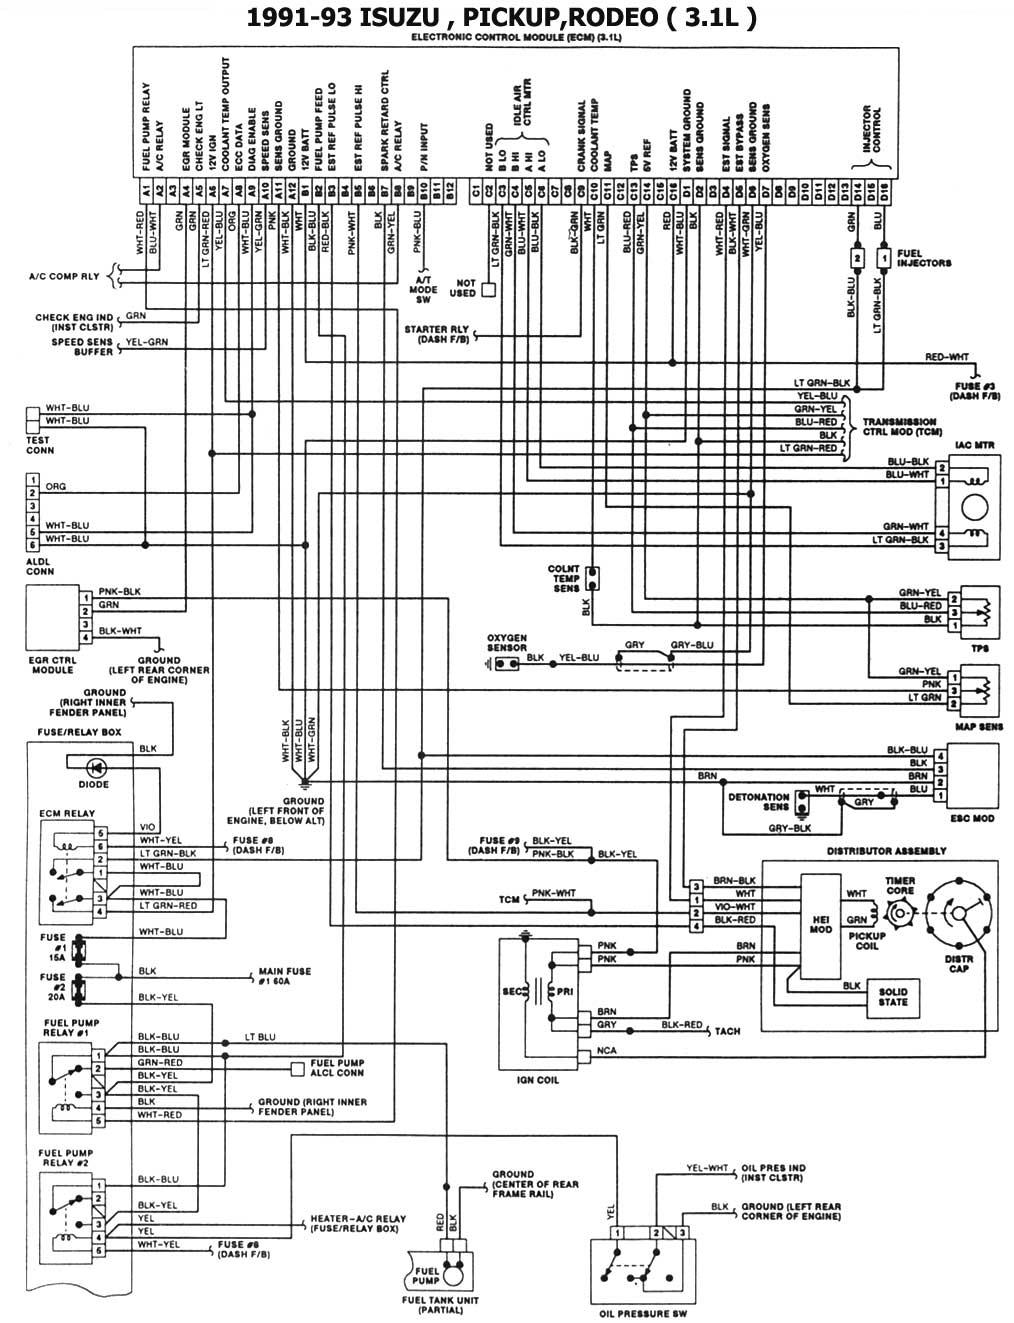 Isuzu Trooper Wiring Diagram, Isuzu, Get Free Image About